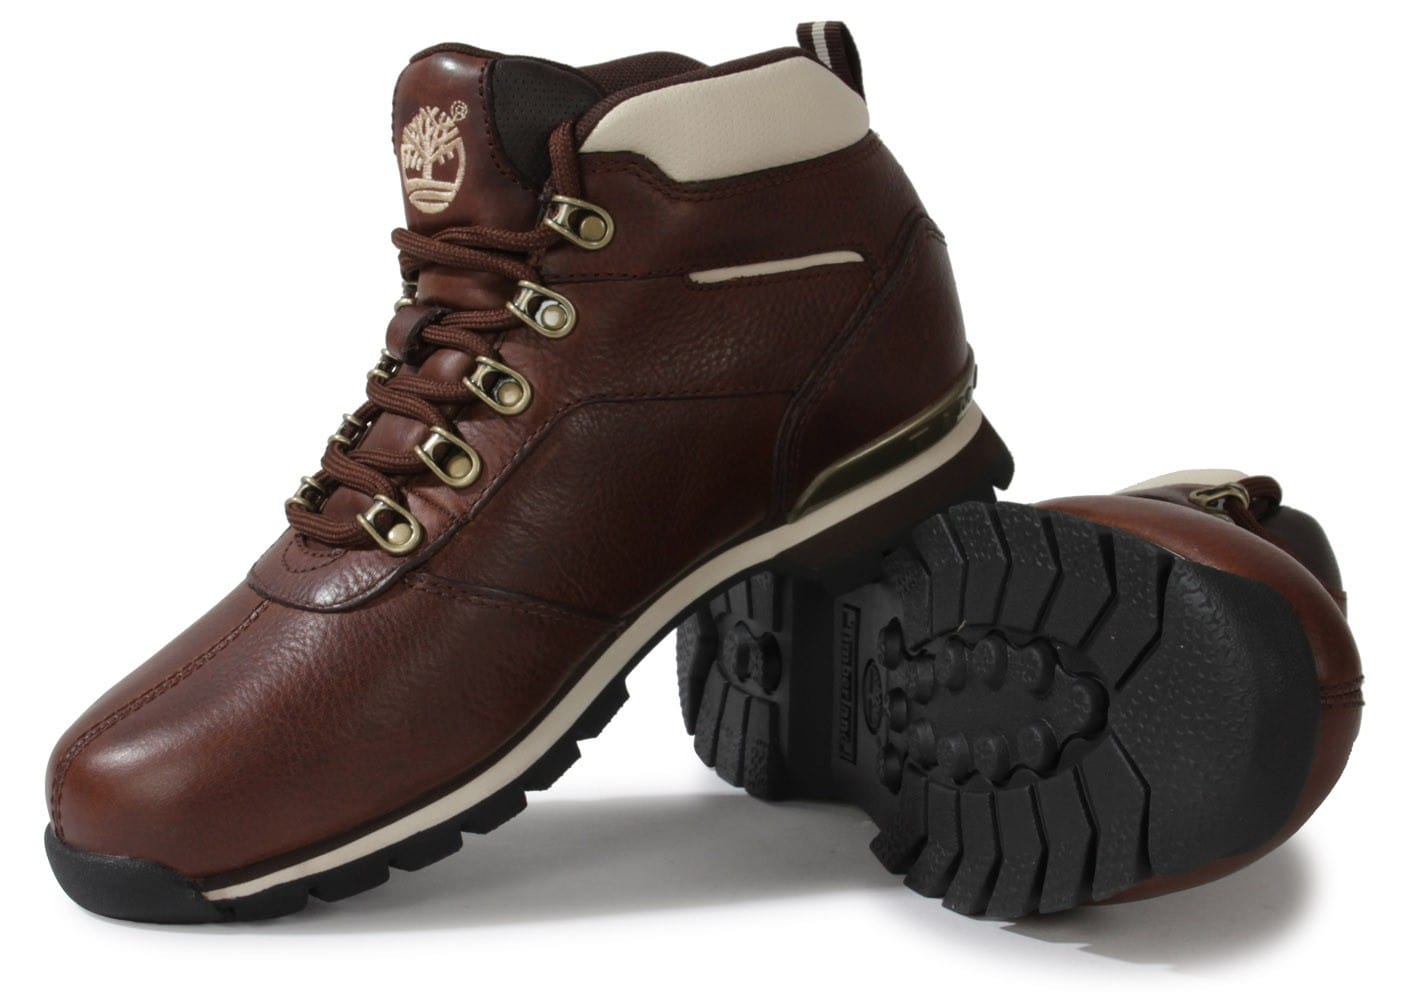 0121-chaussures-timberland-splitock-2-ma